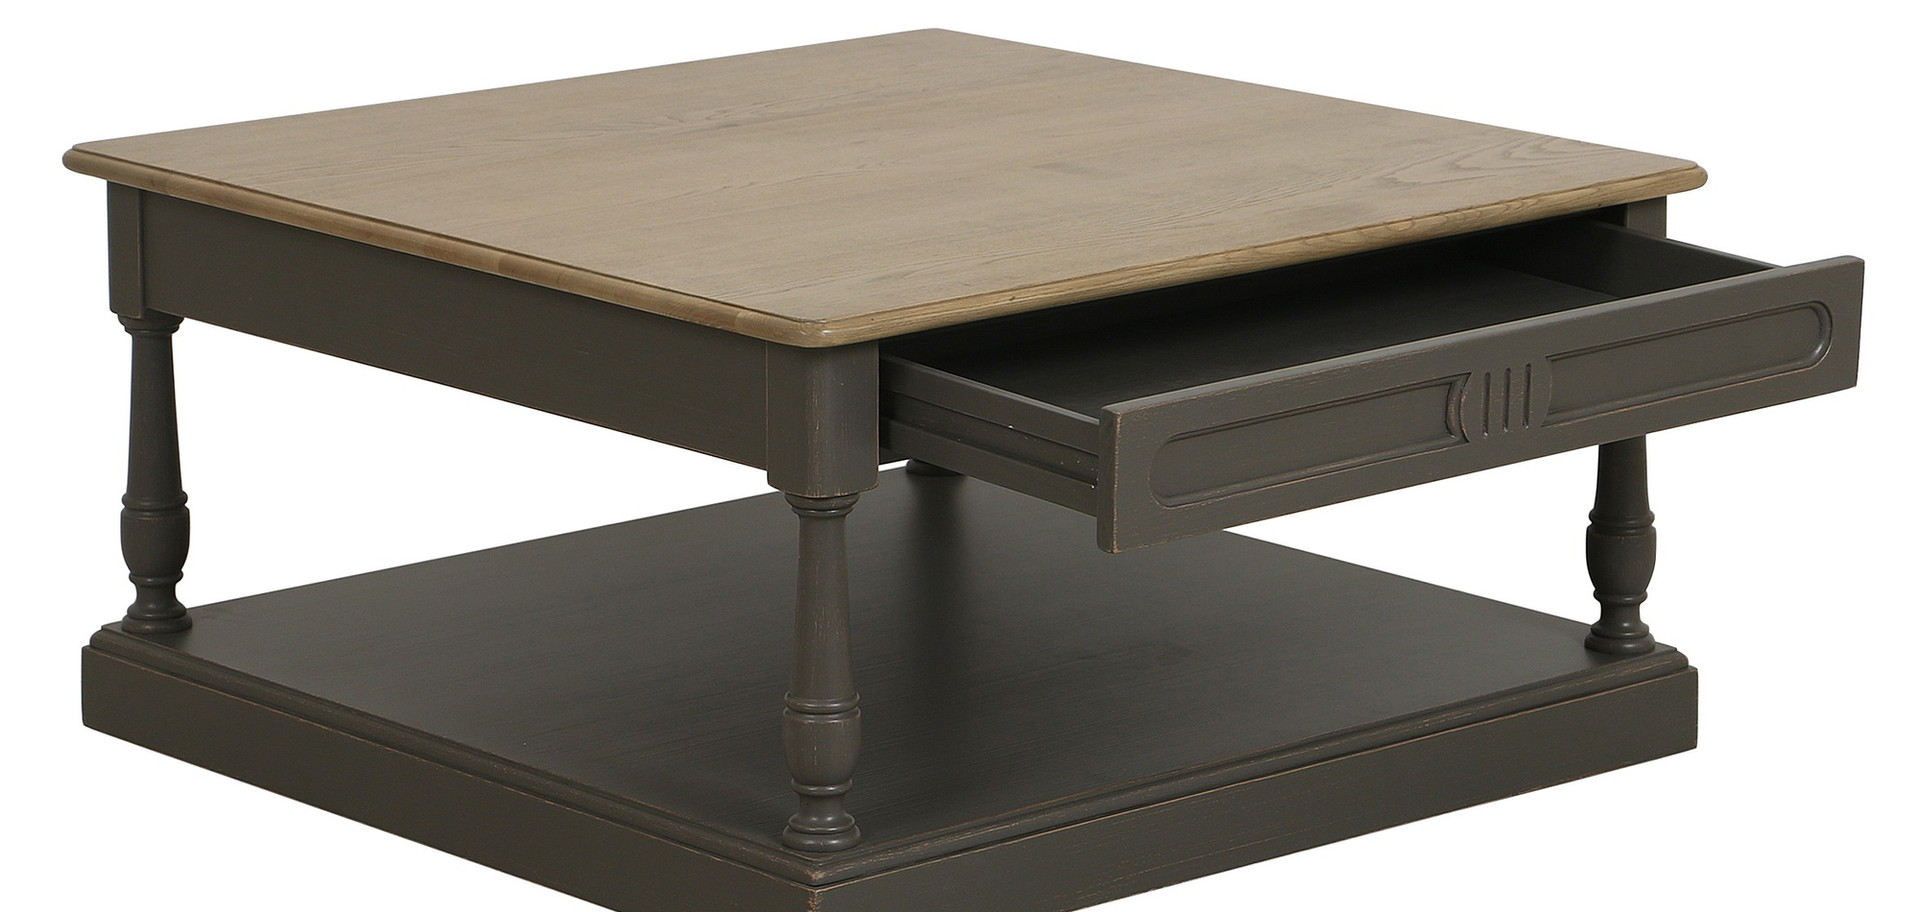 bourgeois-style coffee table